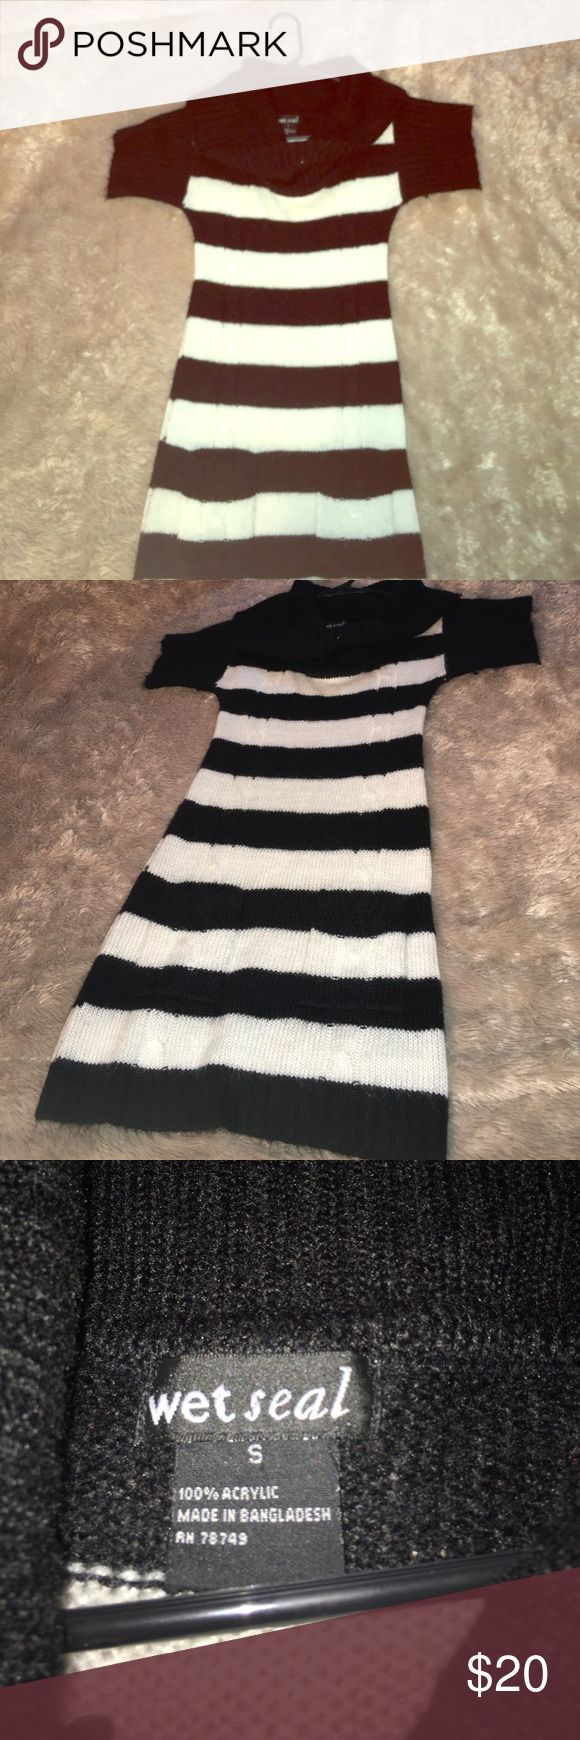 Black & White striped winter dress ☃️ Black & White, 100% Acrylic, Wet Seal, size S dress. 2 front pockets, ruffed, over larger collar. Super comfy and super cute ! ☃️ It was only worn once for a Christmas dinner & has been in my pet free/smoke free home. In brand new condition. Wet Seal Dresses Midi